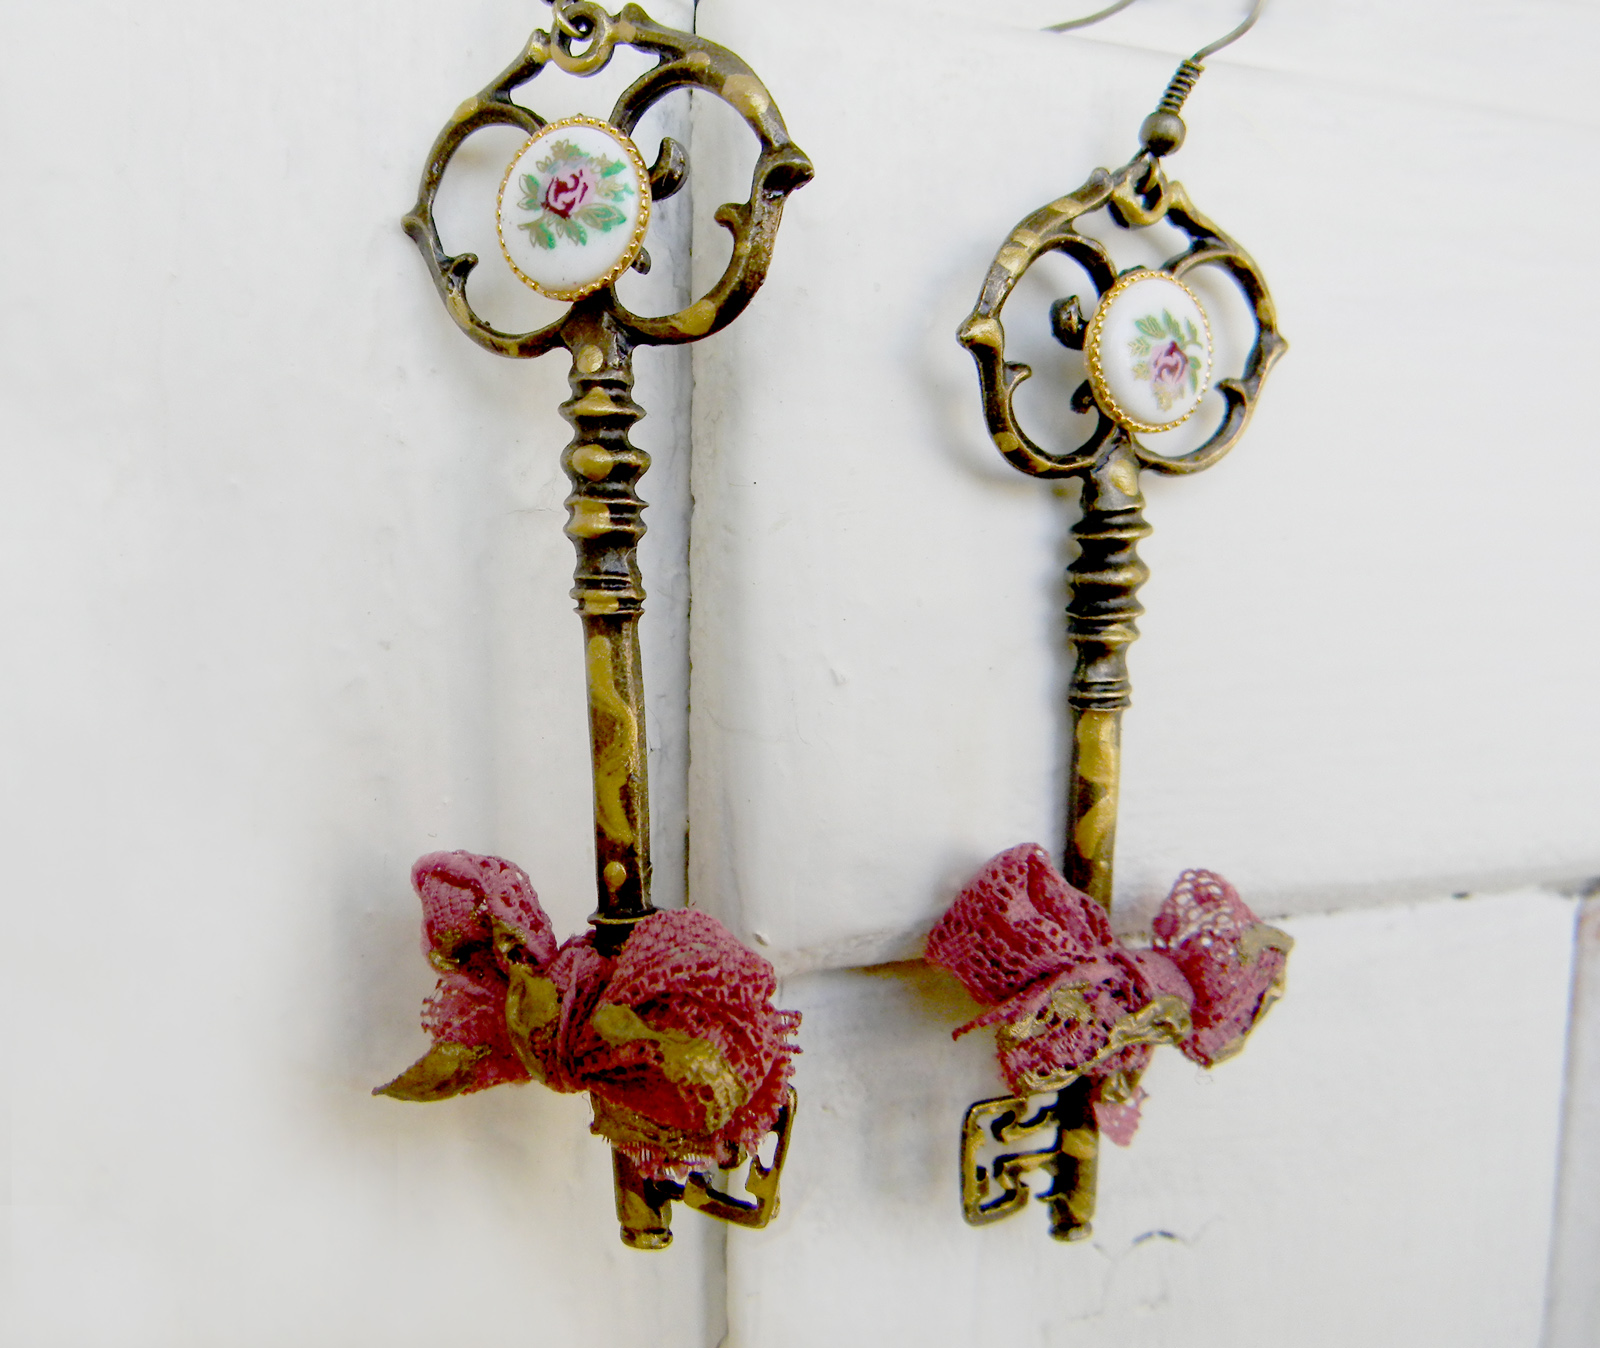 Vintage Key Handmade Earrings